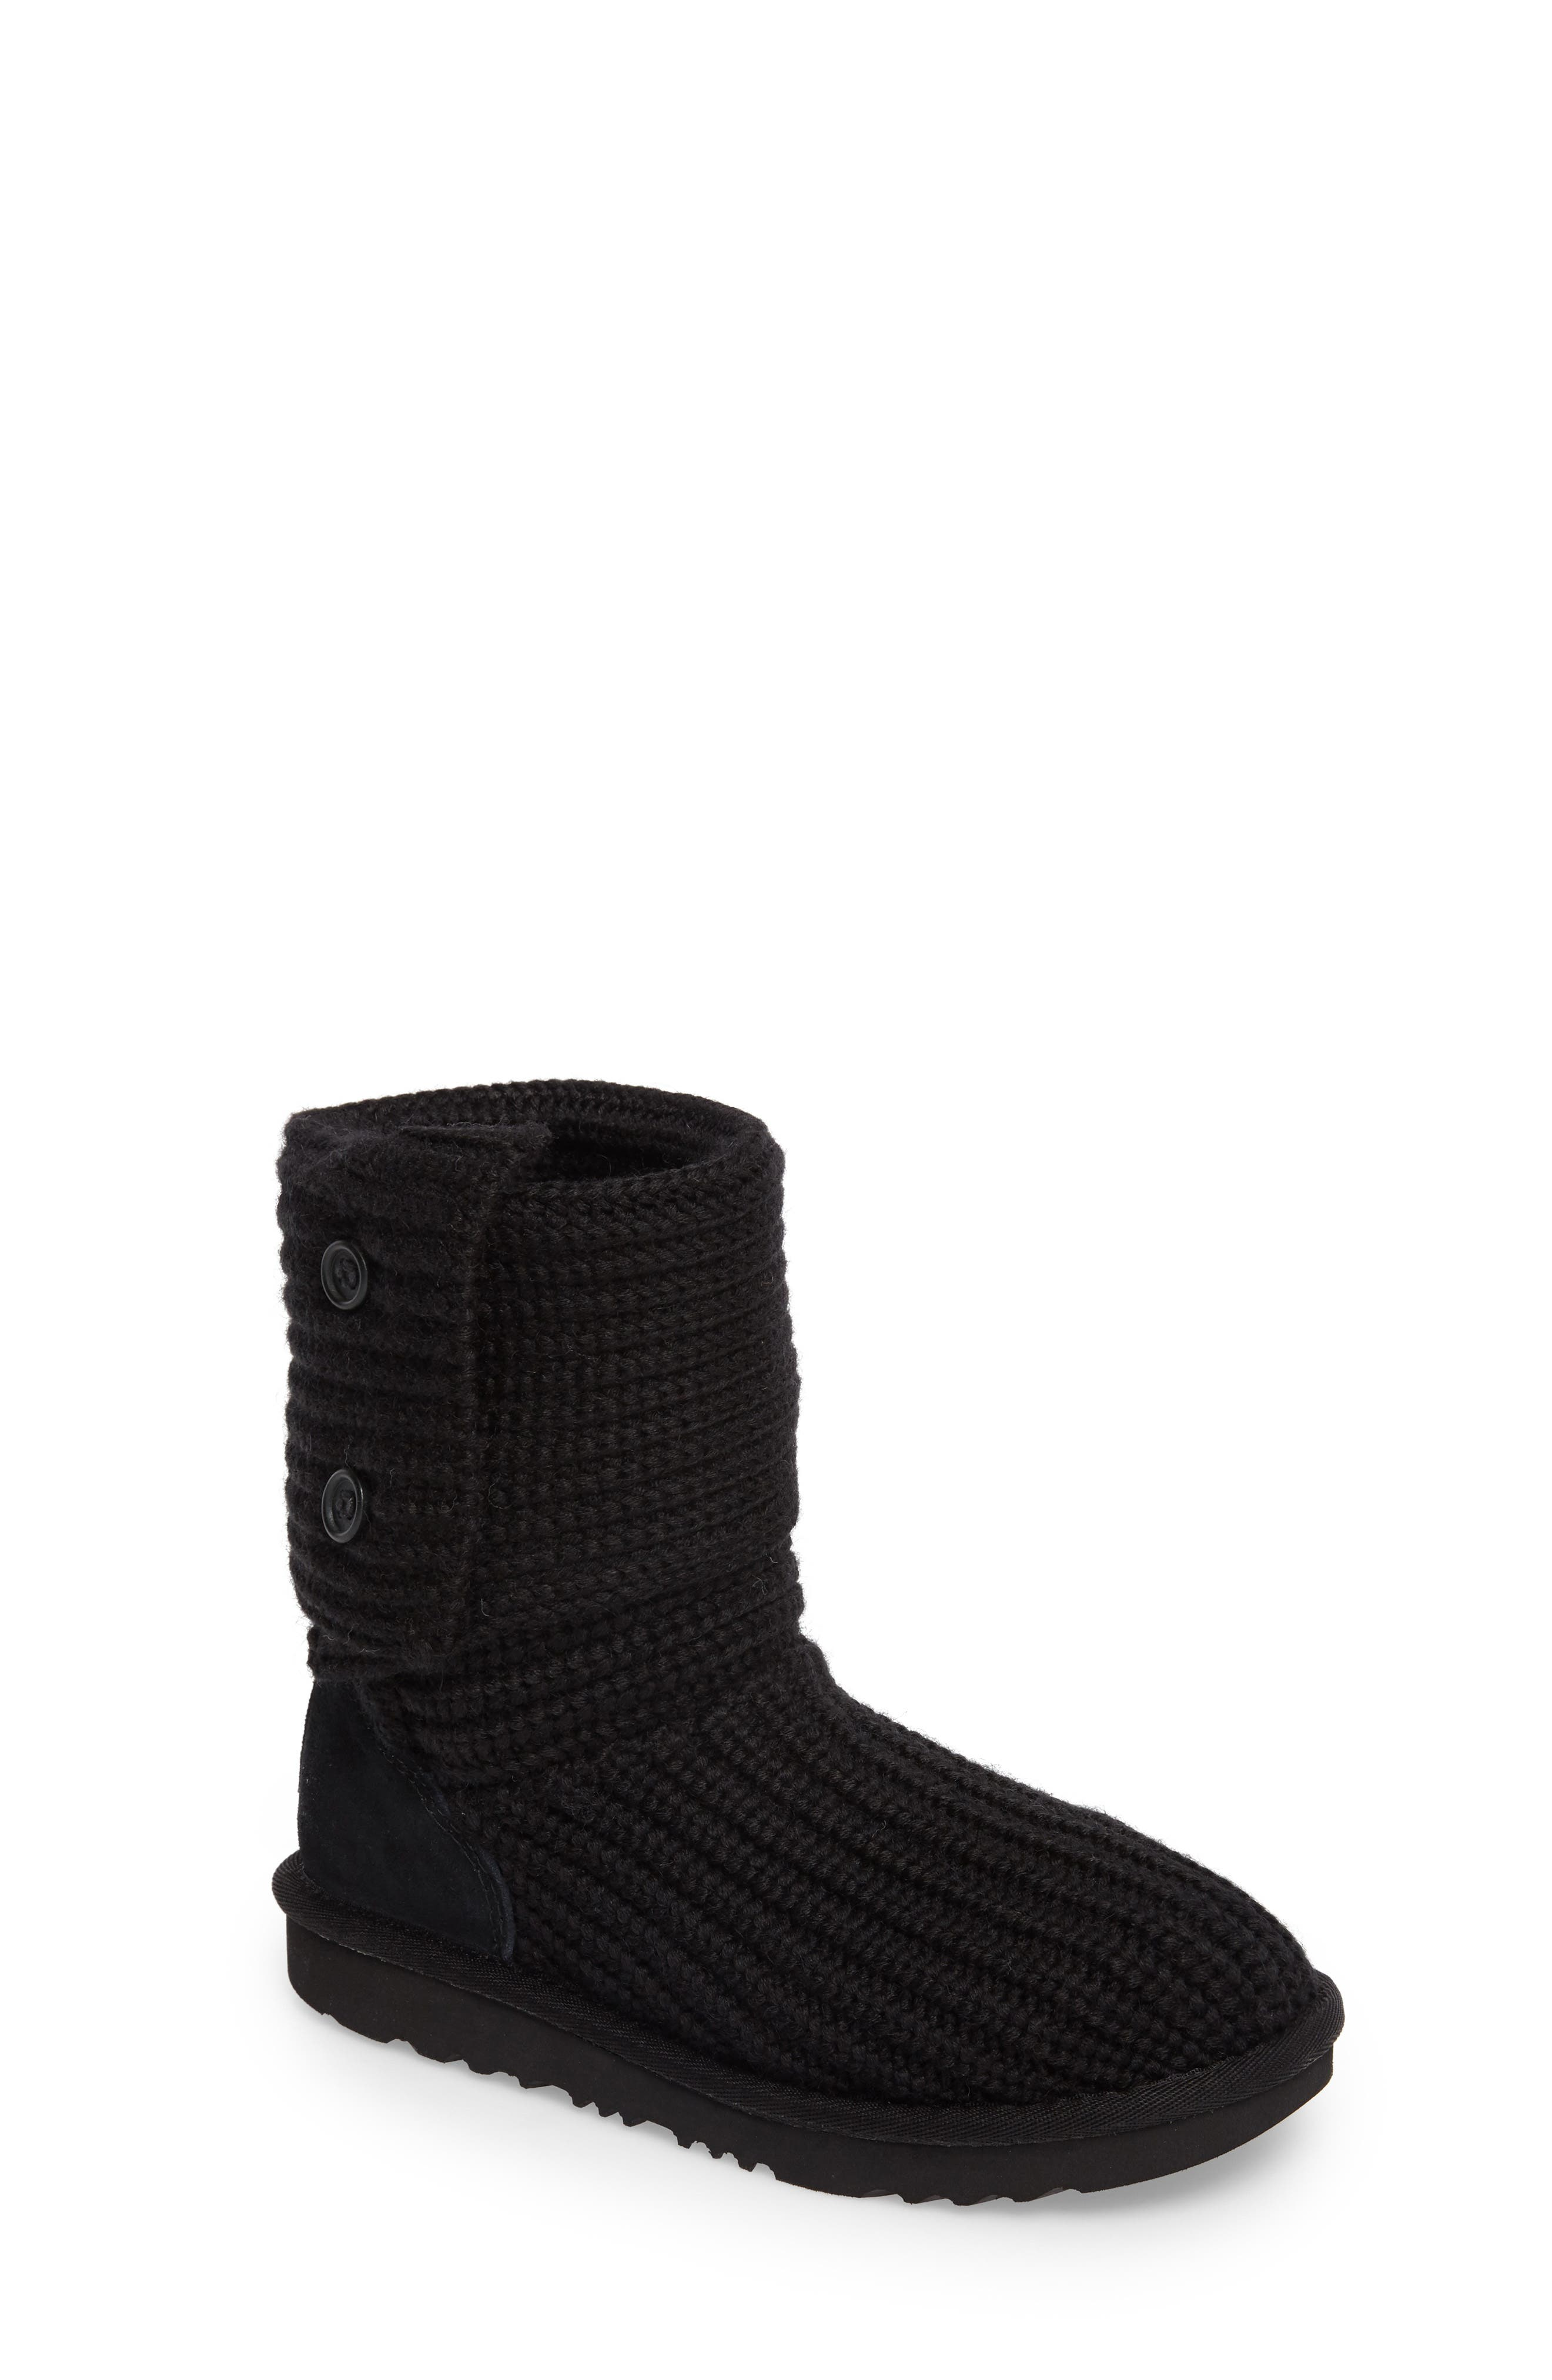 Cardy II Cableknit Bootie,                         Main,                         color, Black